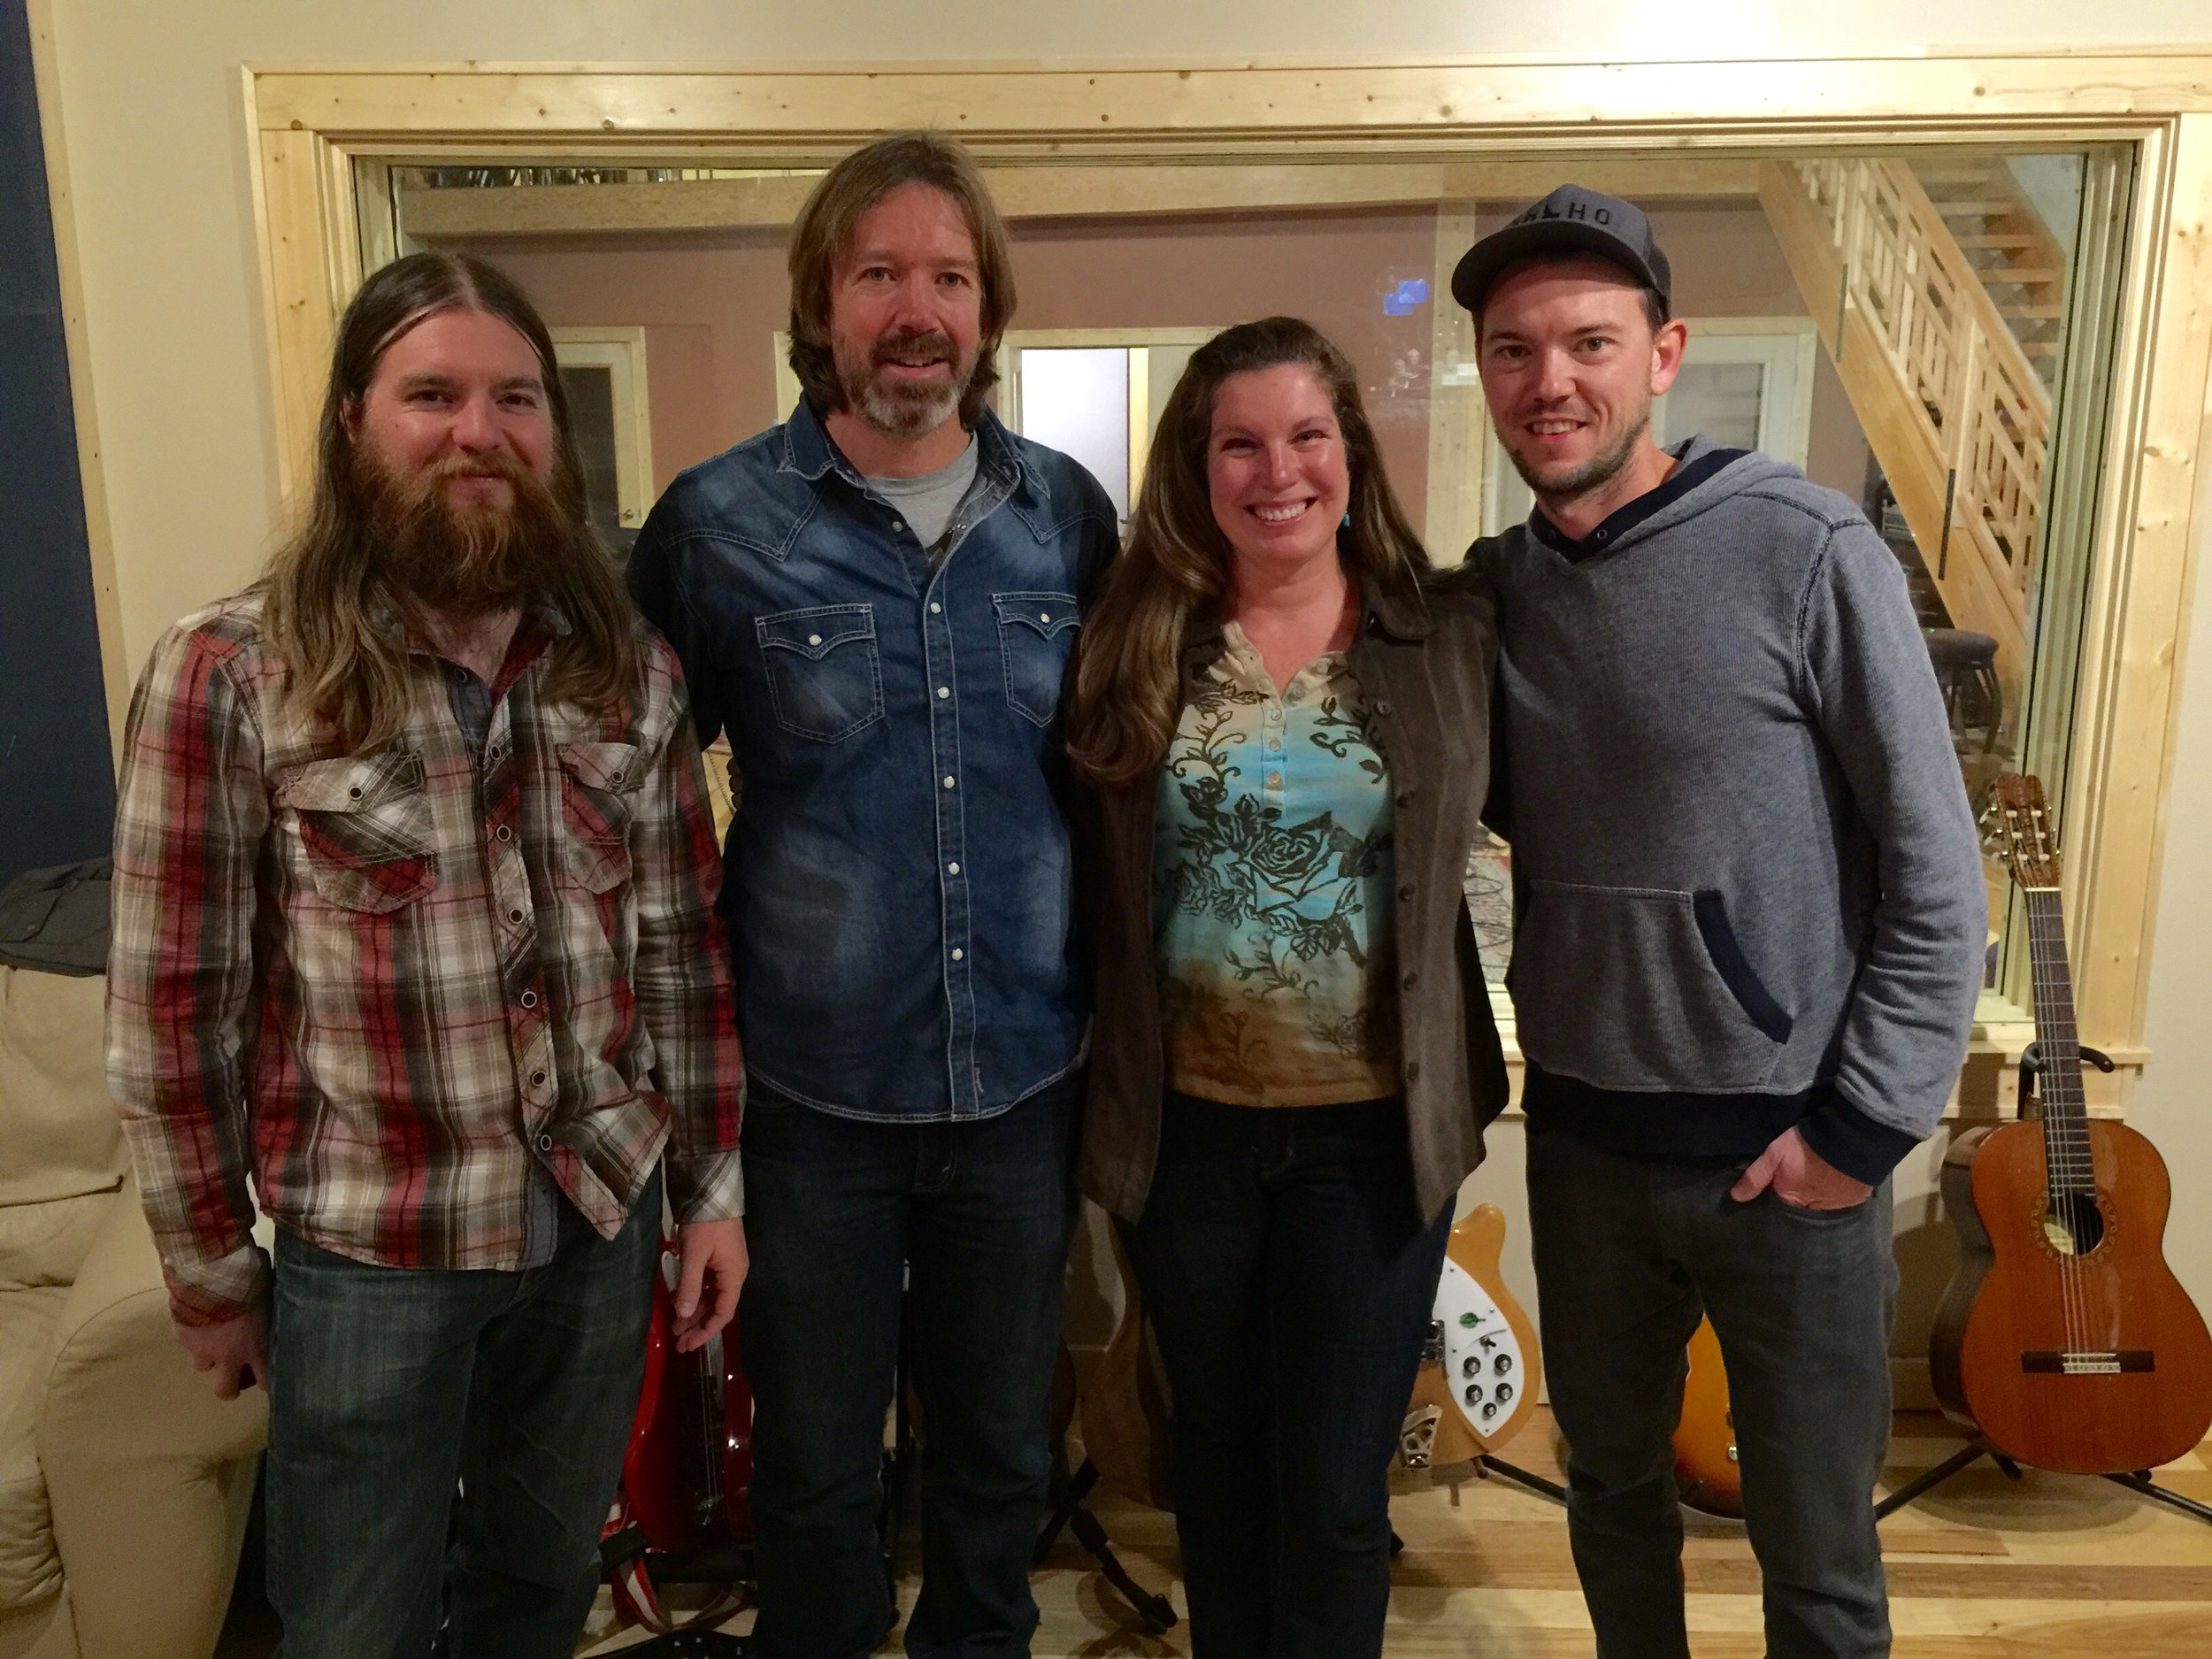 Feels Like Home | Mary Beth Cross recording session